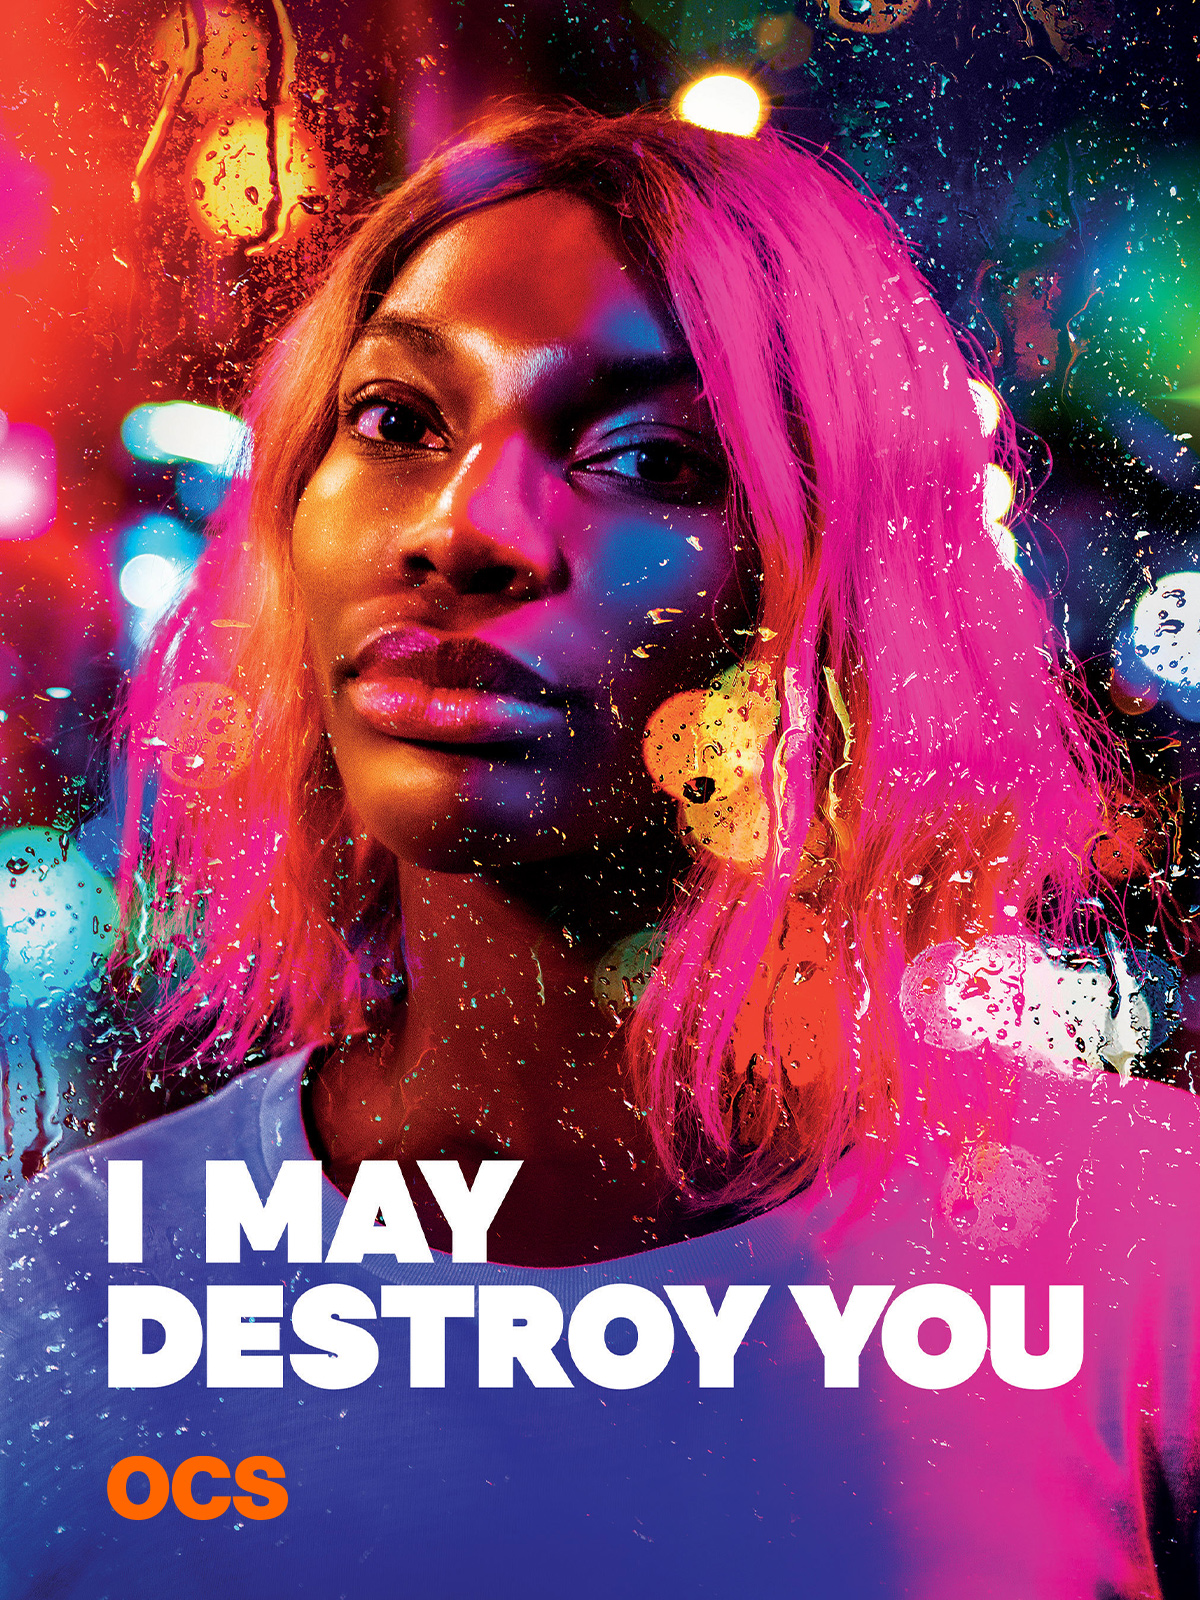 39 - I May Destroy You